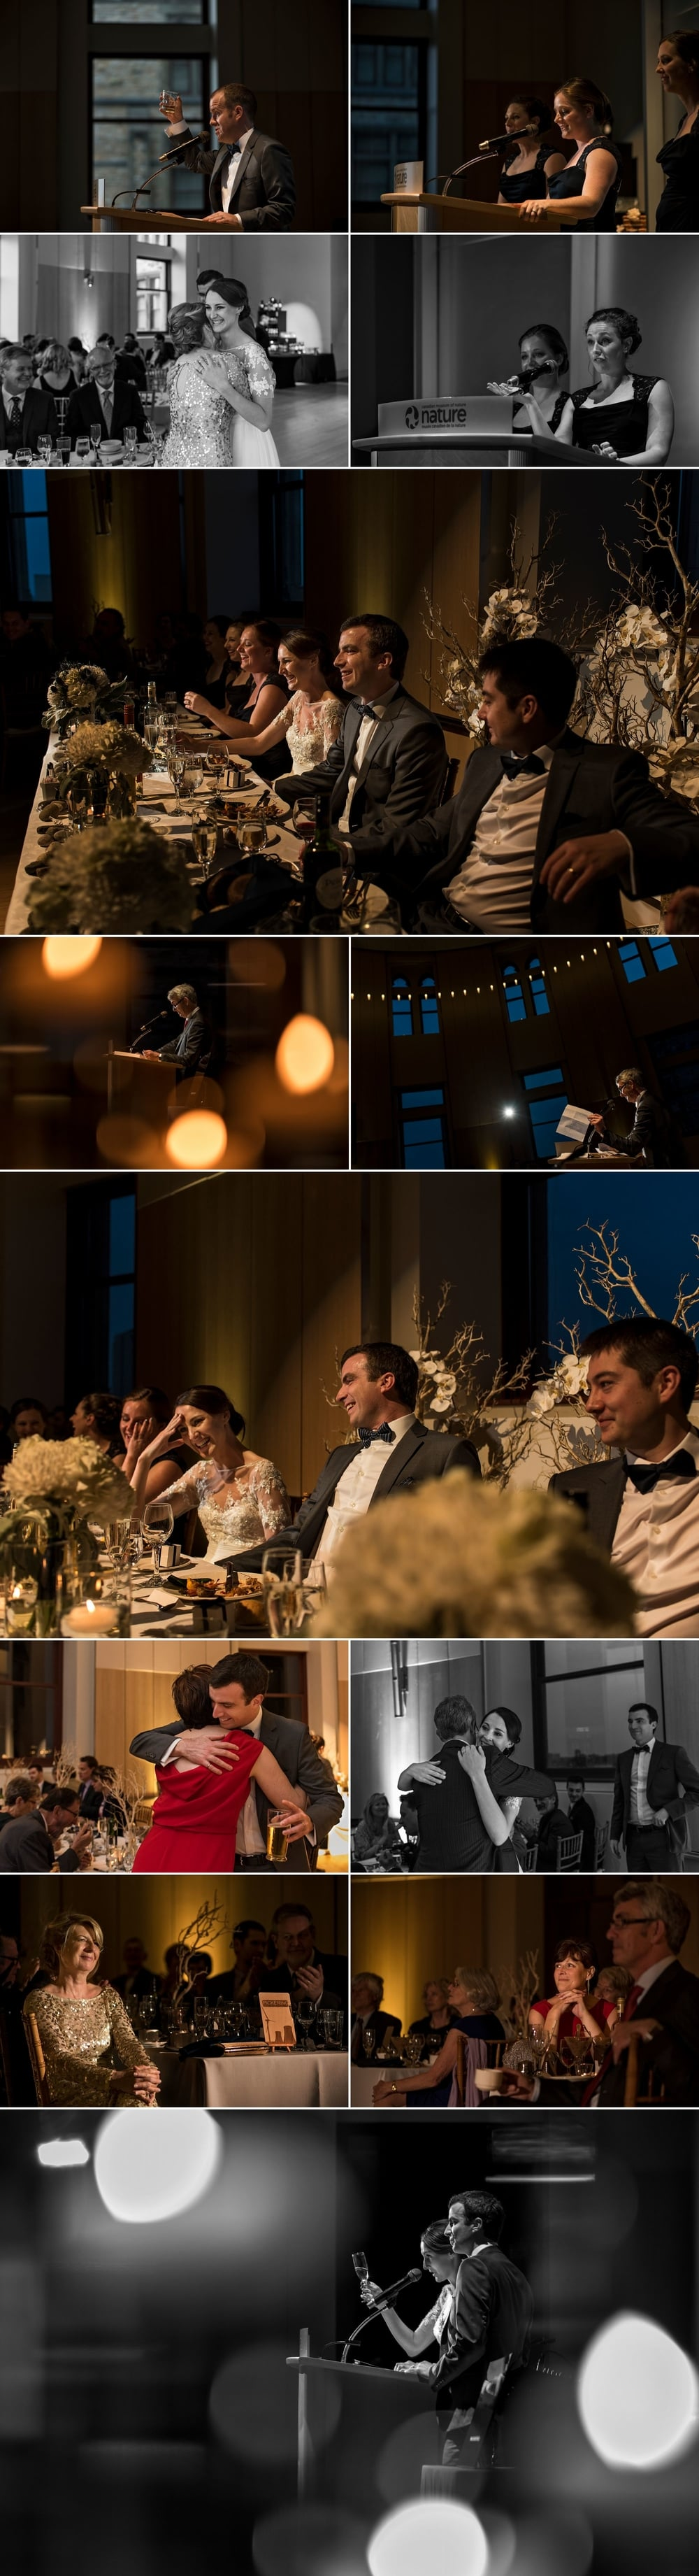 Wedding reception at the museum of nature